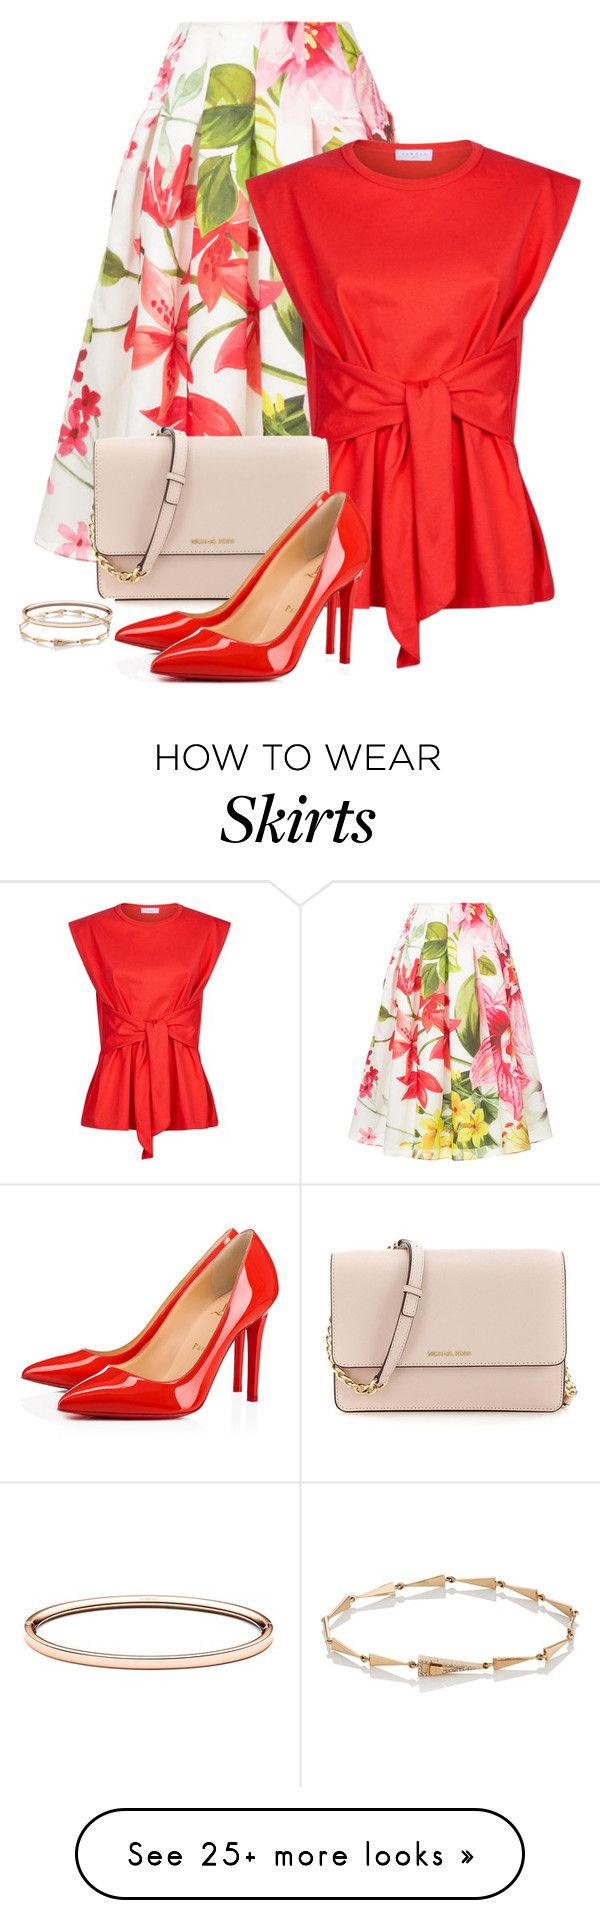 """""""Red shoes contest"""" by mindy-2-1 on Polyvore featuring Bambah, Sandro, Christian Louboutin, Eva Fehren, Spring, contest, fashionset and 2018"""